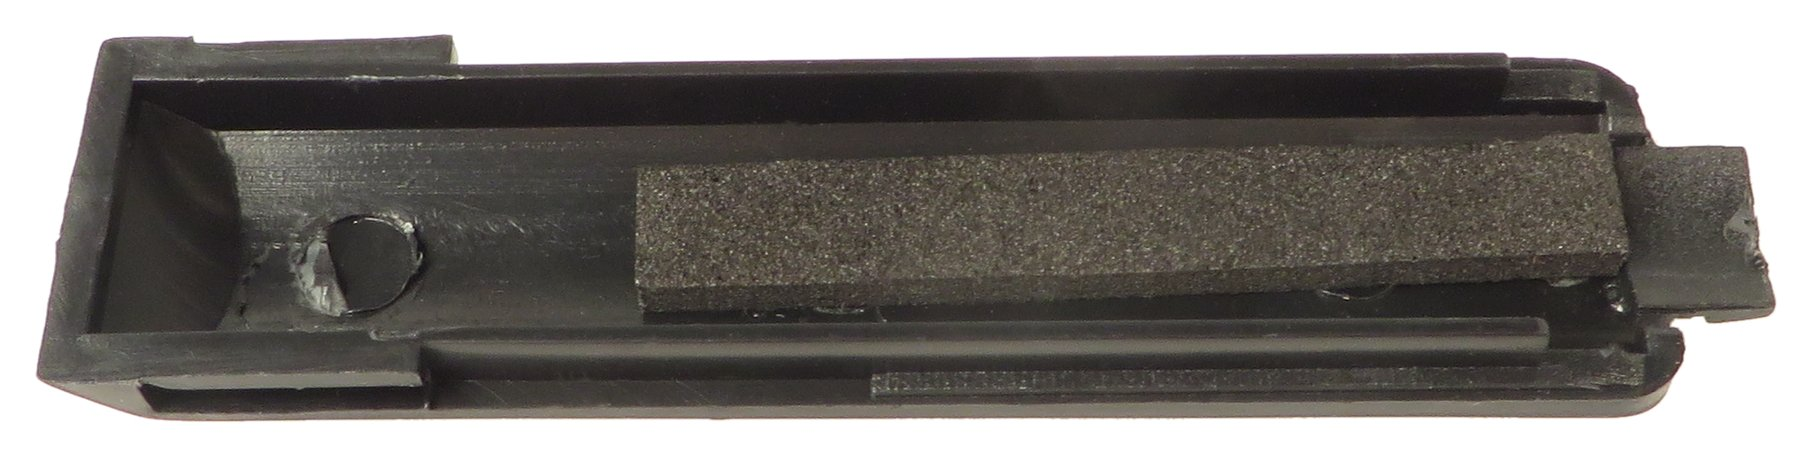 Battery Cover for UHF-5800